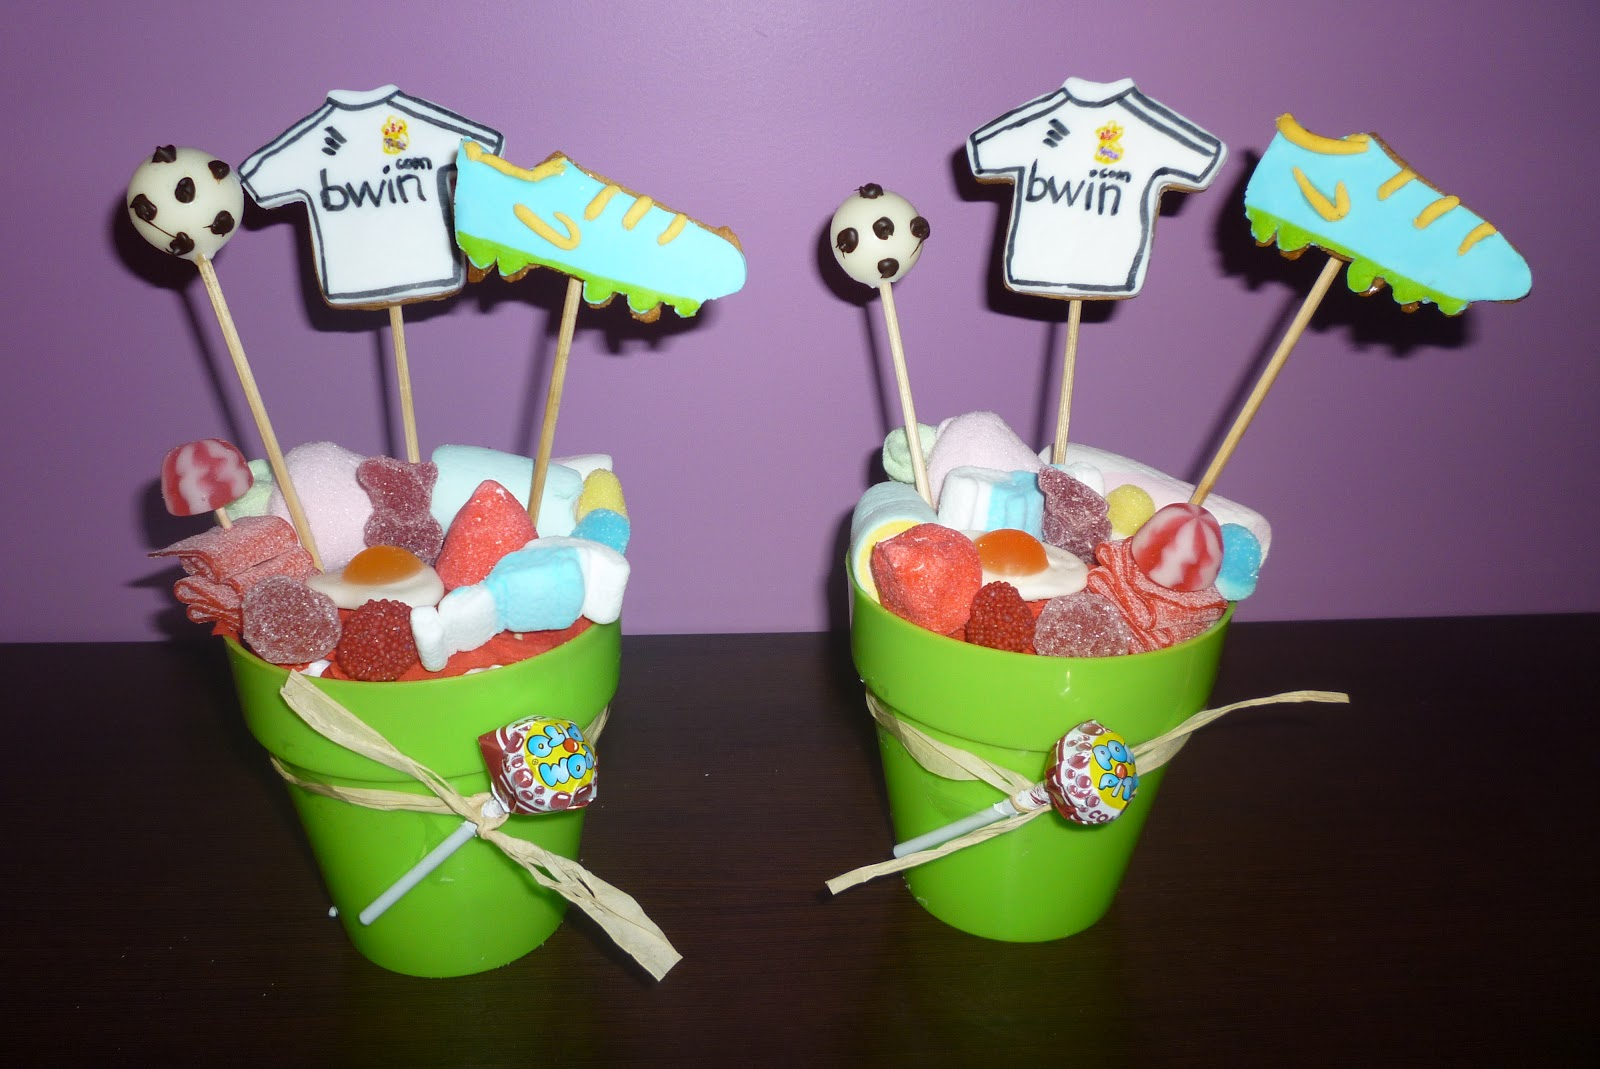 Chuches a la carta macetas de chuches real madrid for Centros de mesa con chuches